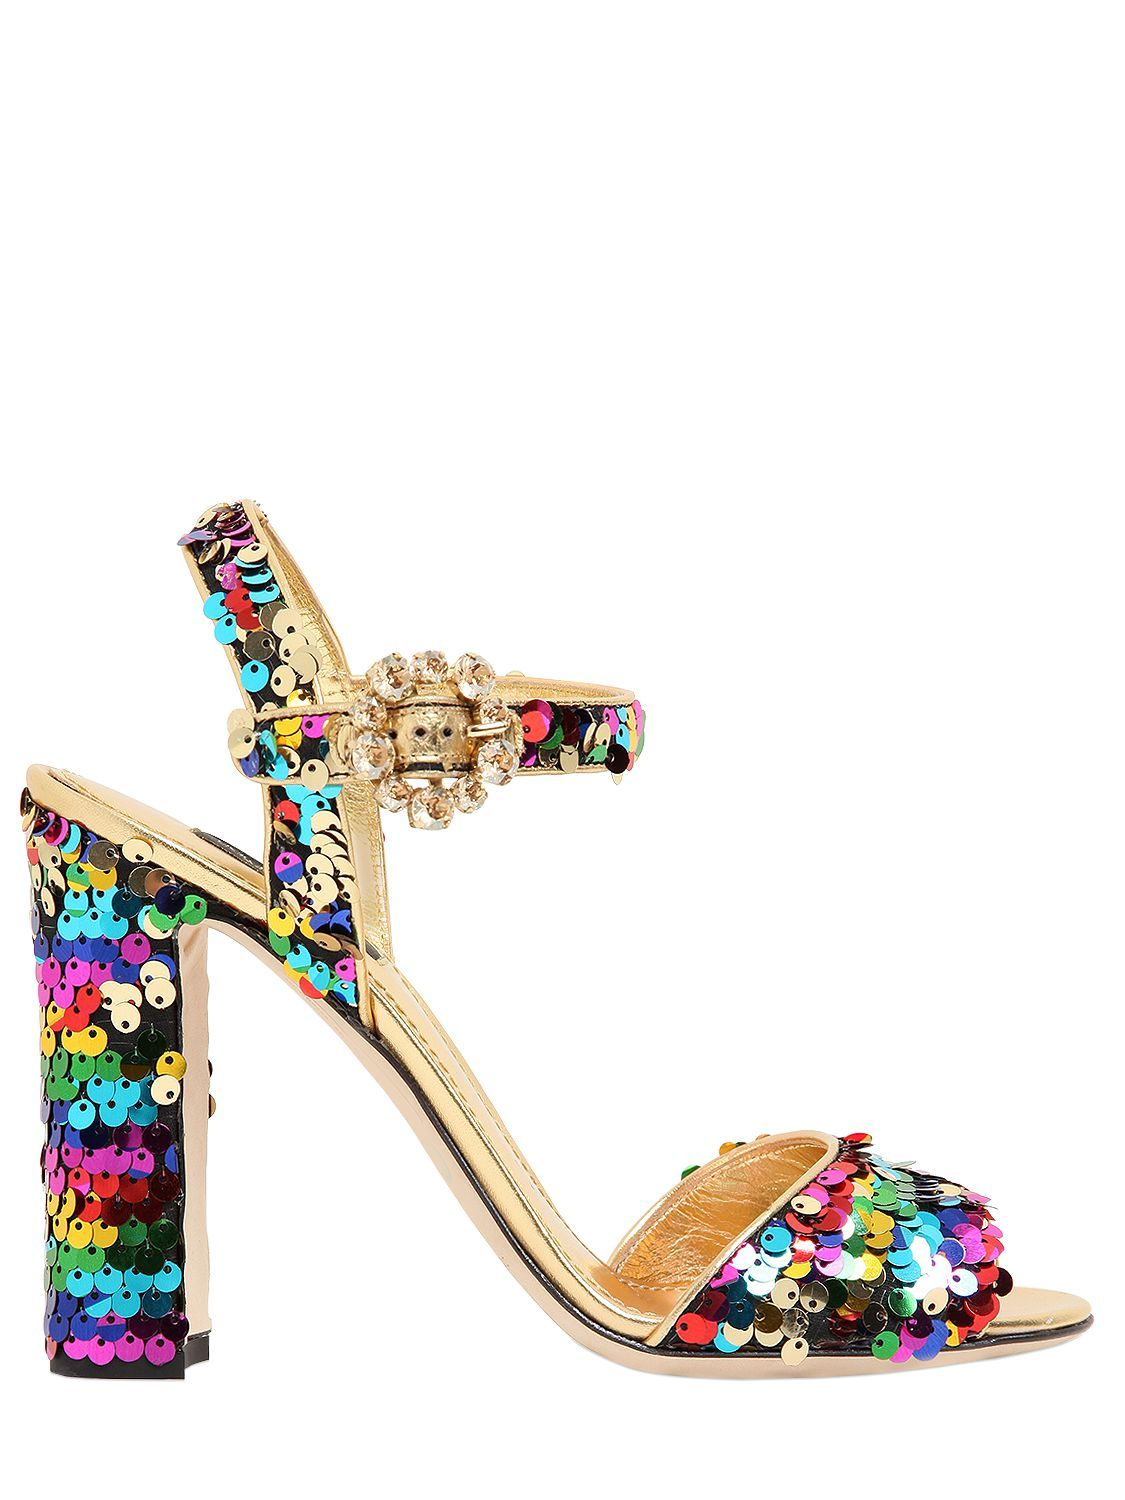 DOLCE & GABBANA - 90MM BIANCA SEQUINED LEATHER SANDALS - SANDALS - GOLD/MULTI - LUISAVIAROMA